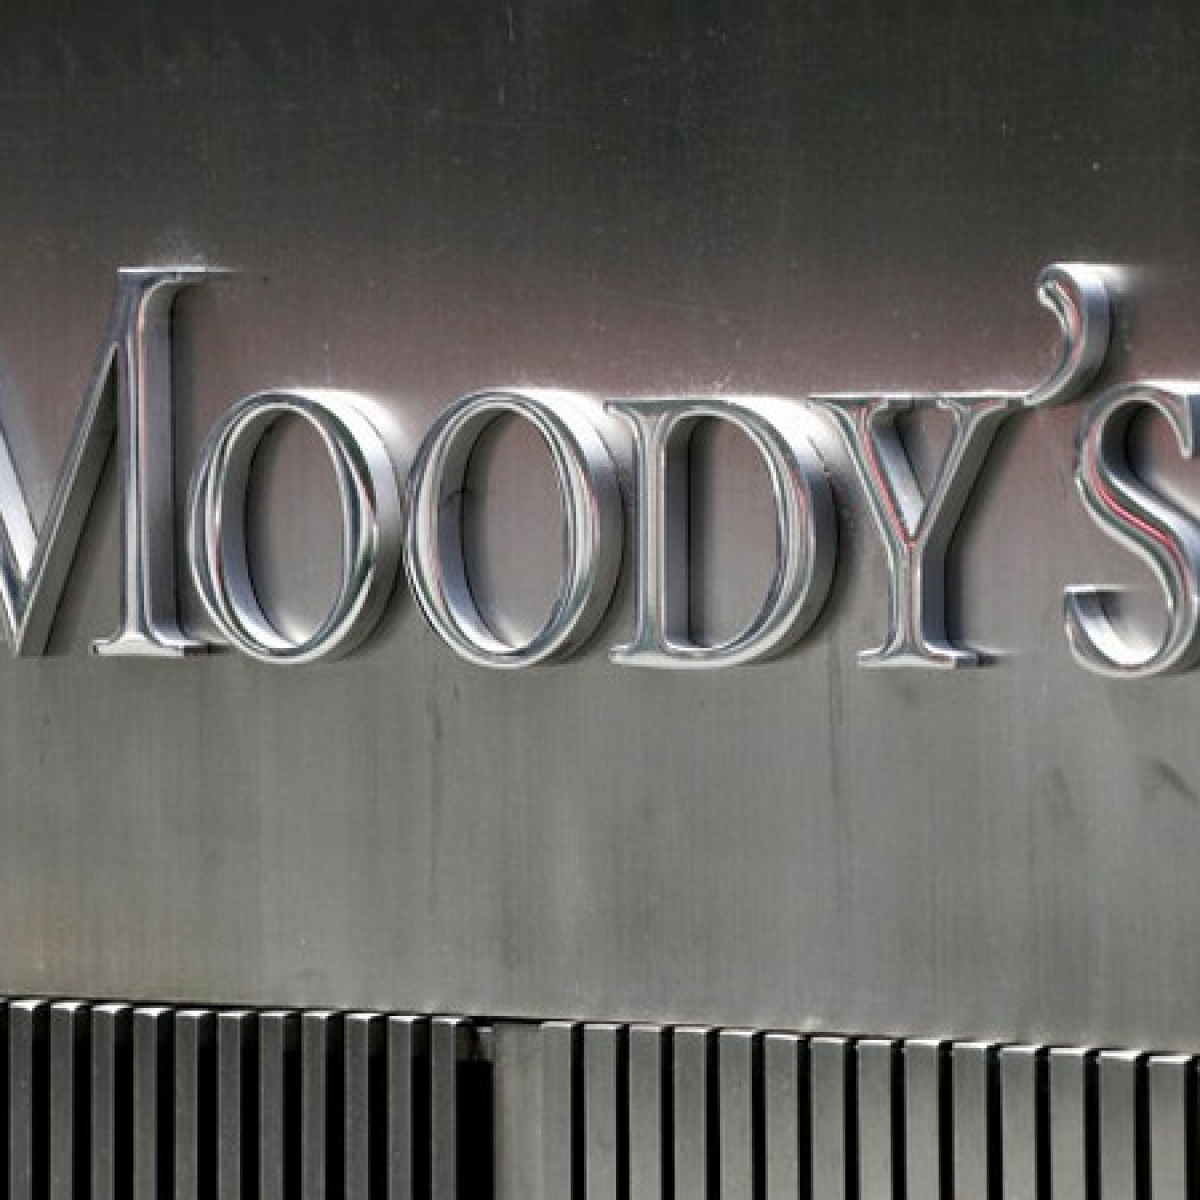 Moody's cuts GDP To (-) 3.1% for 2020